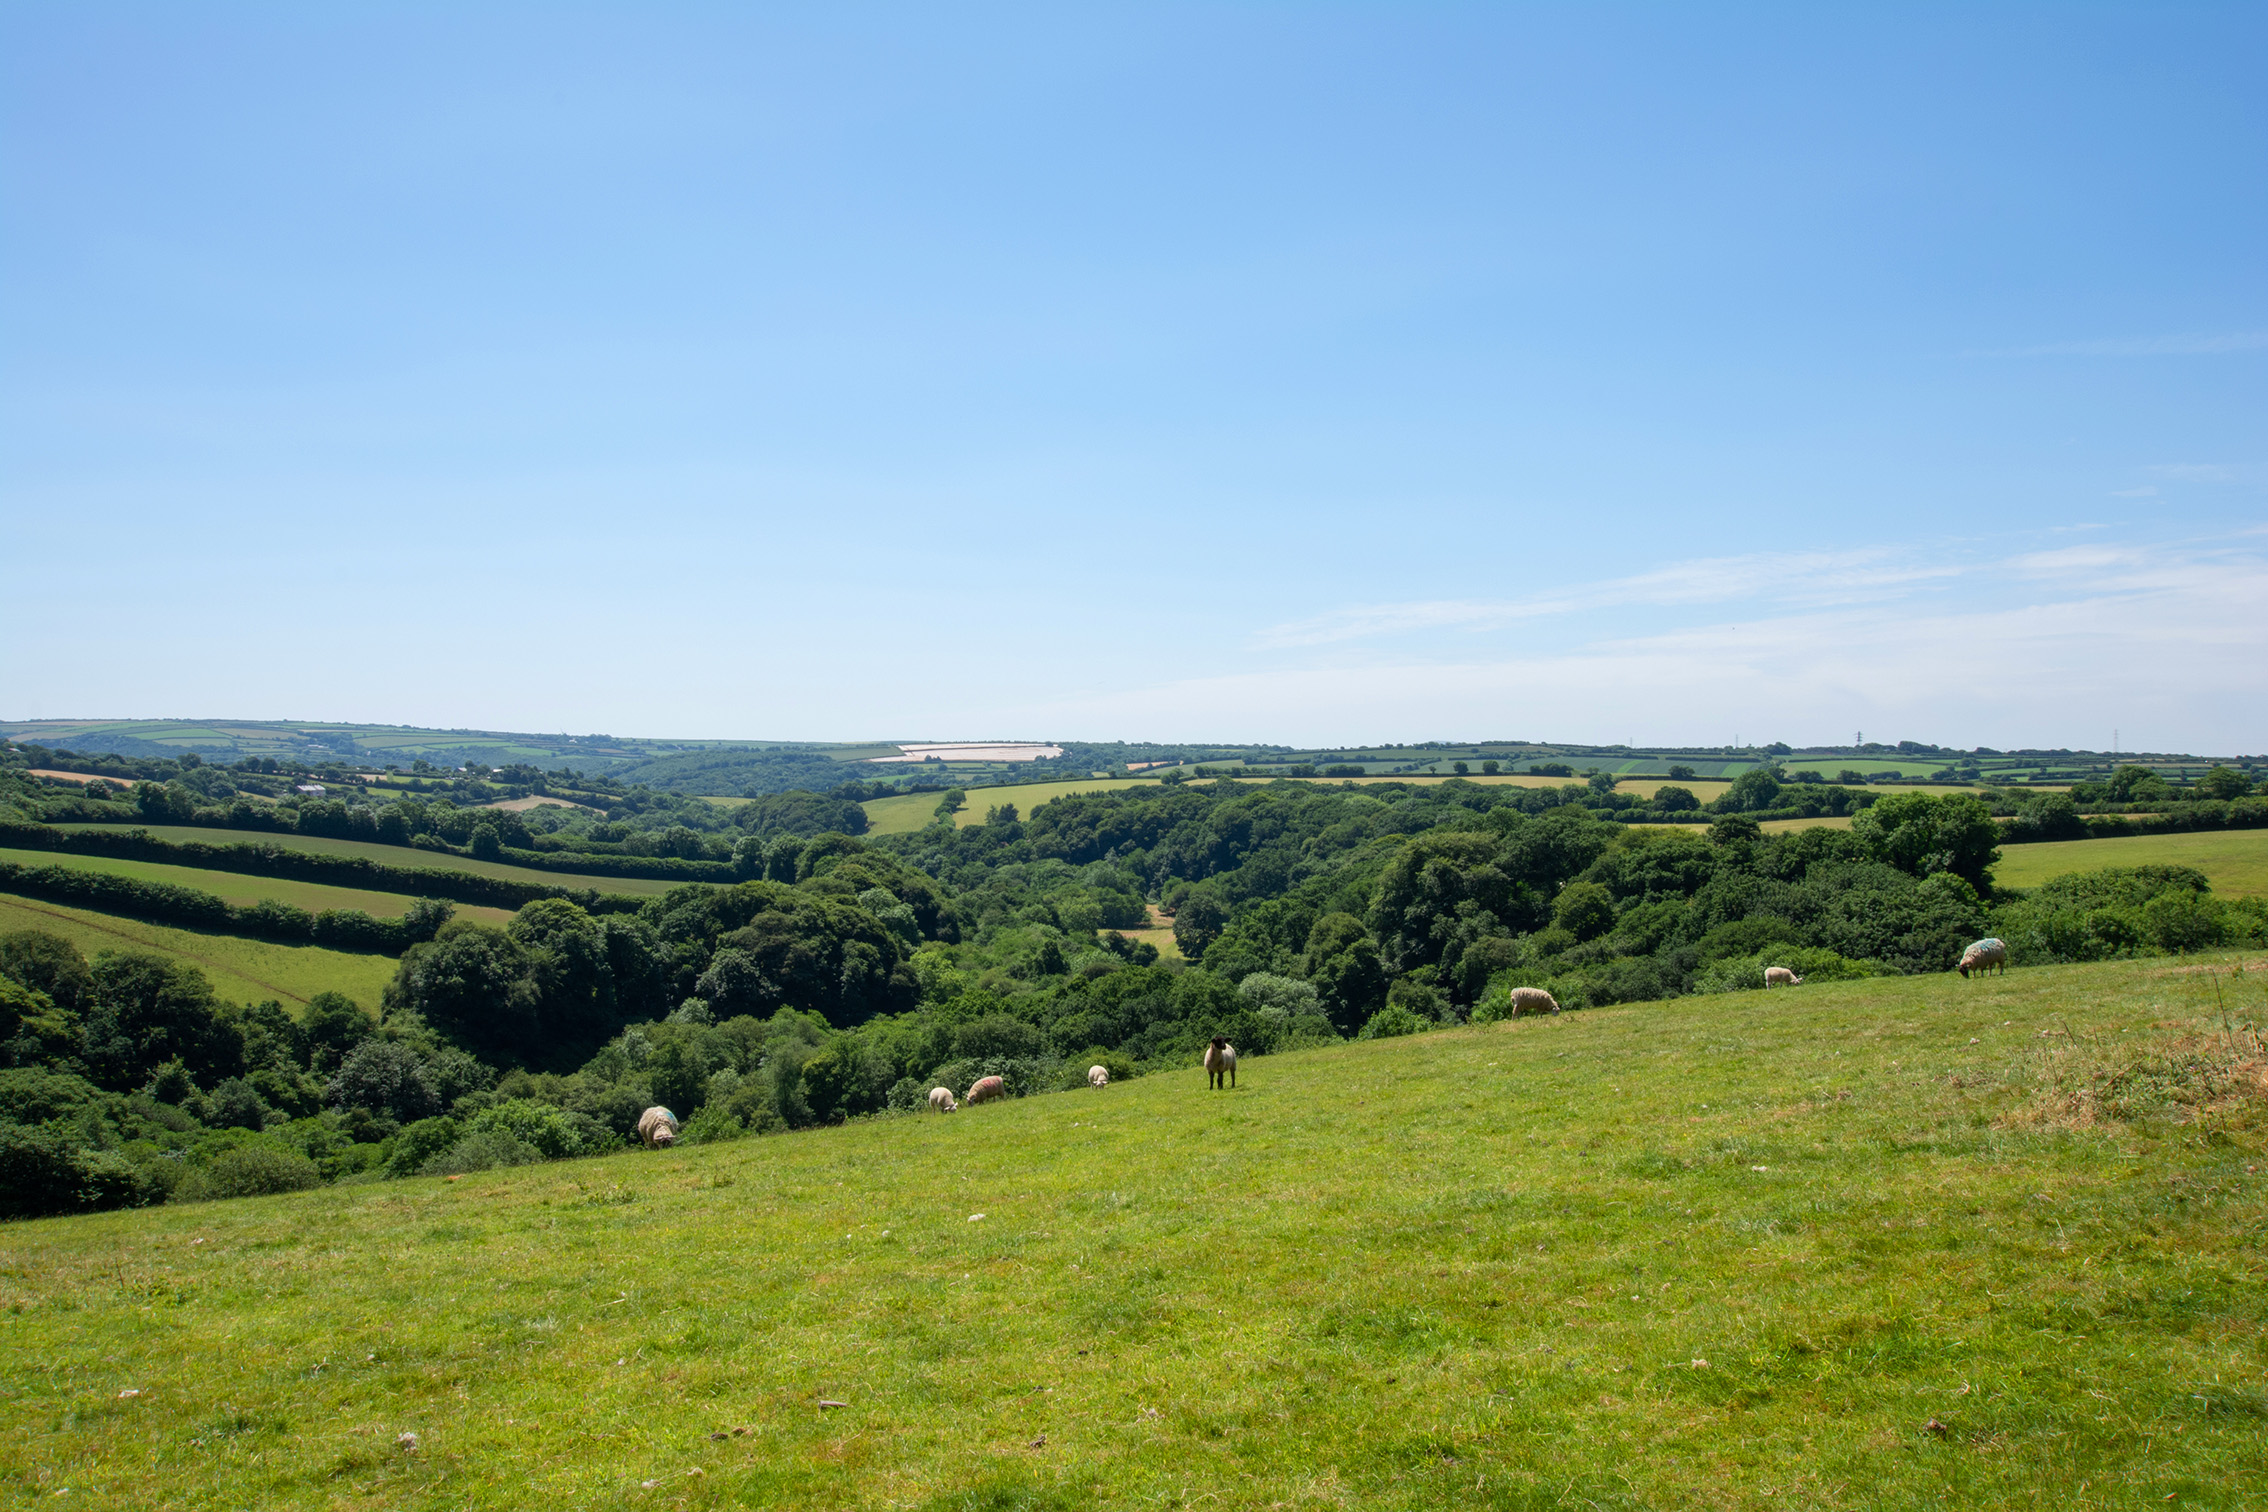 The view from Penrose Burden luxury self catering converted barn holiday cottages in North Cornwall 03.jpg